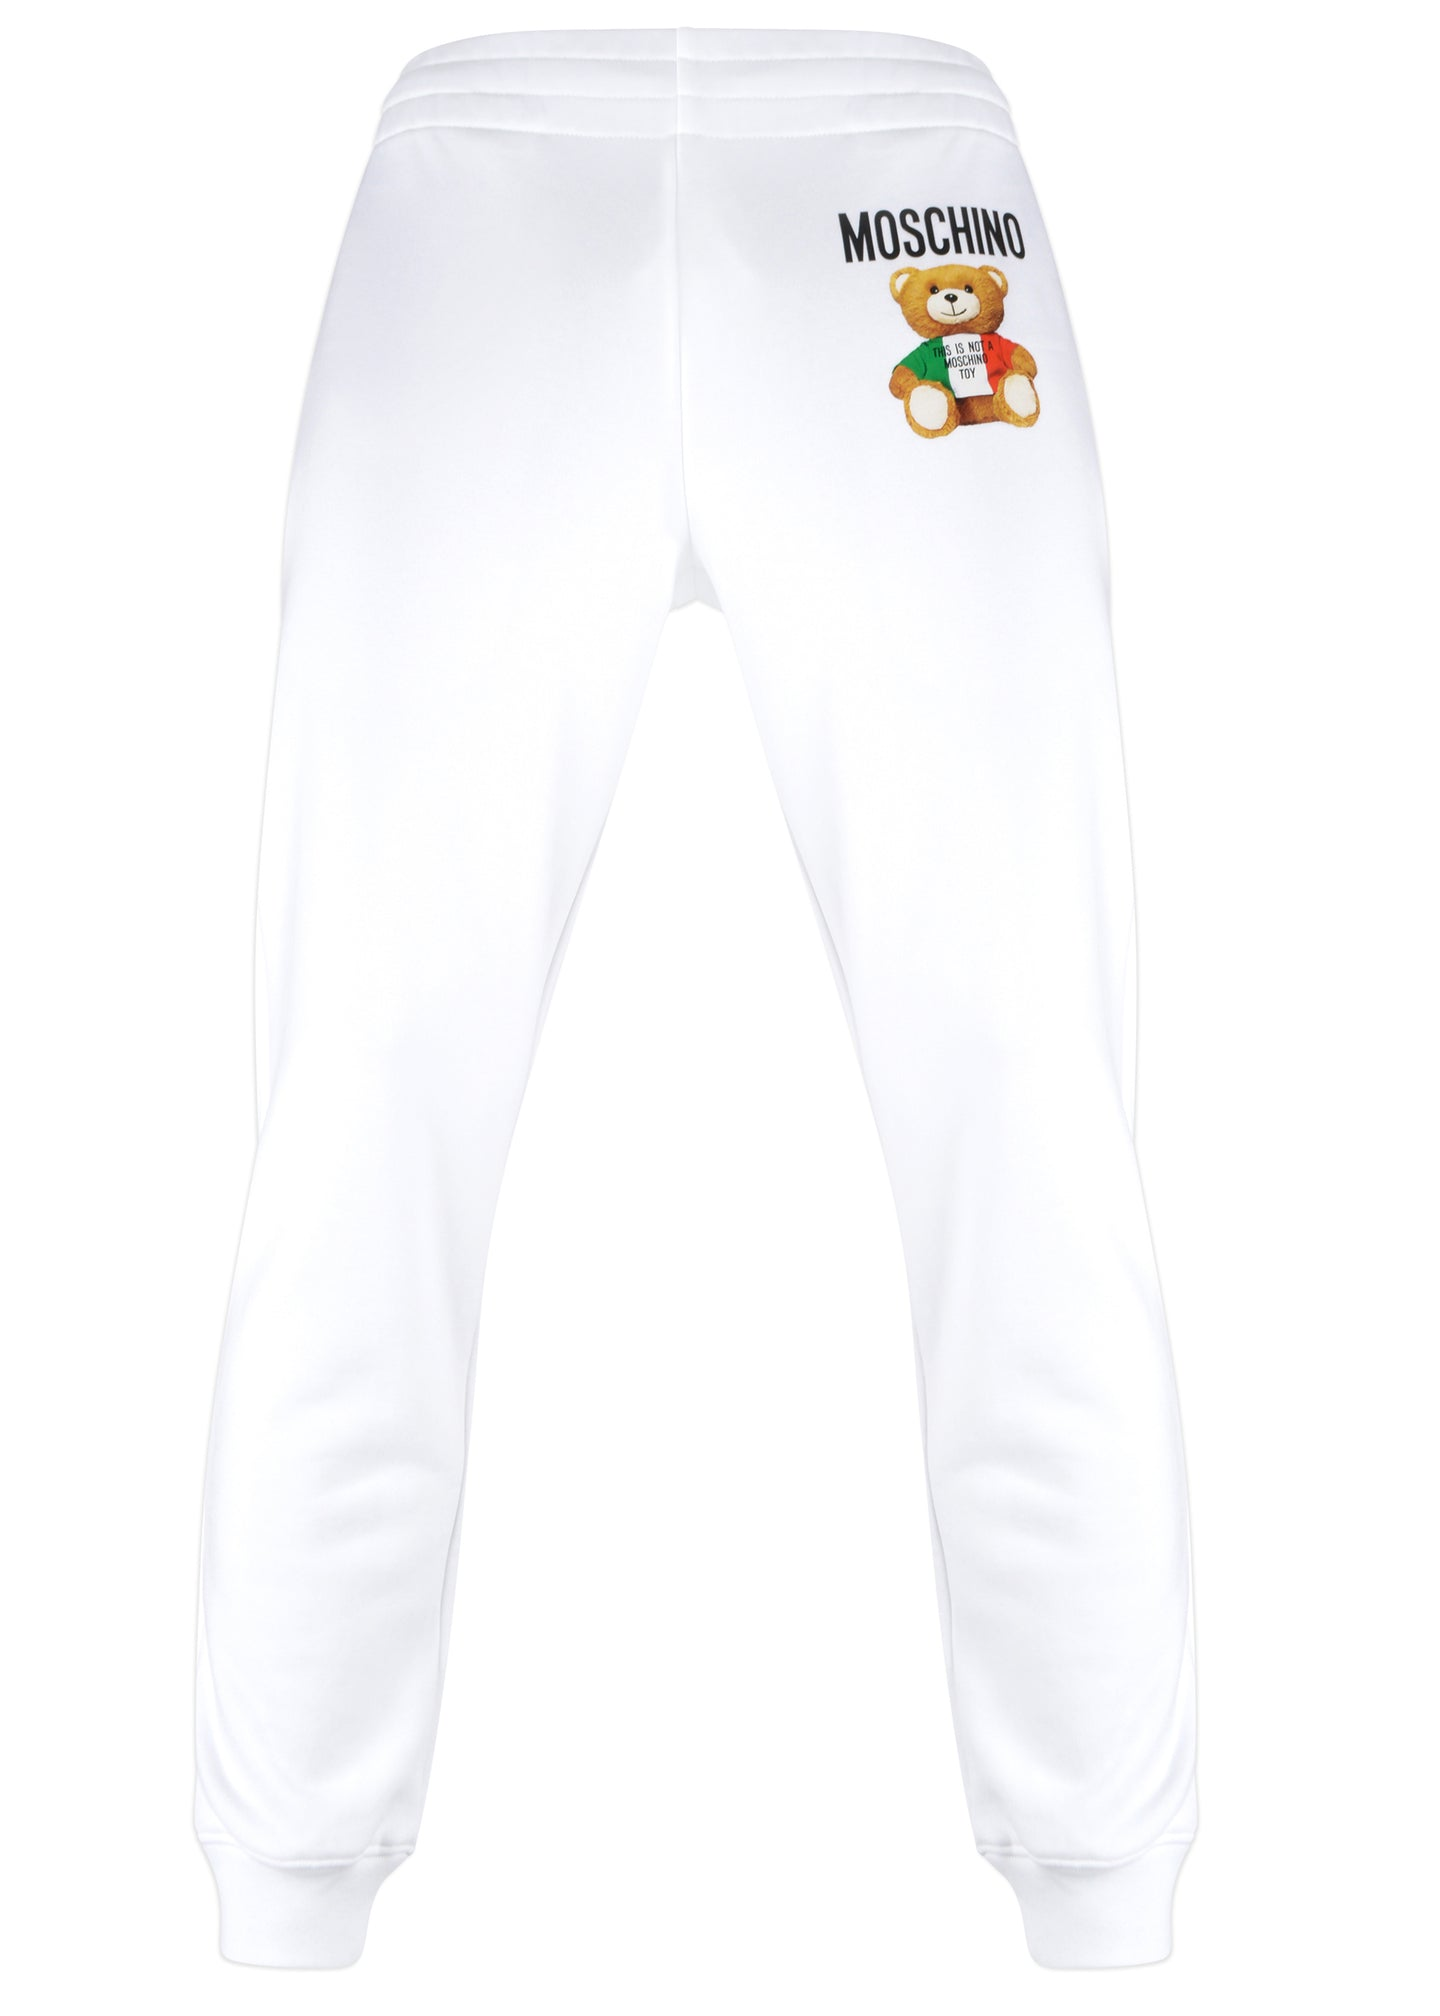 Moschino Couture - Teddy Bear Jogs Hidden Draw String Front Teddy Italia Image On Front Leg - 200001 - White